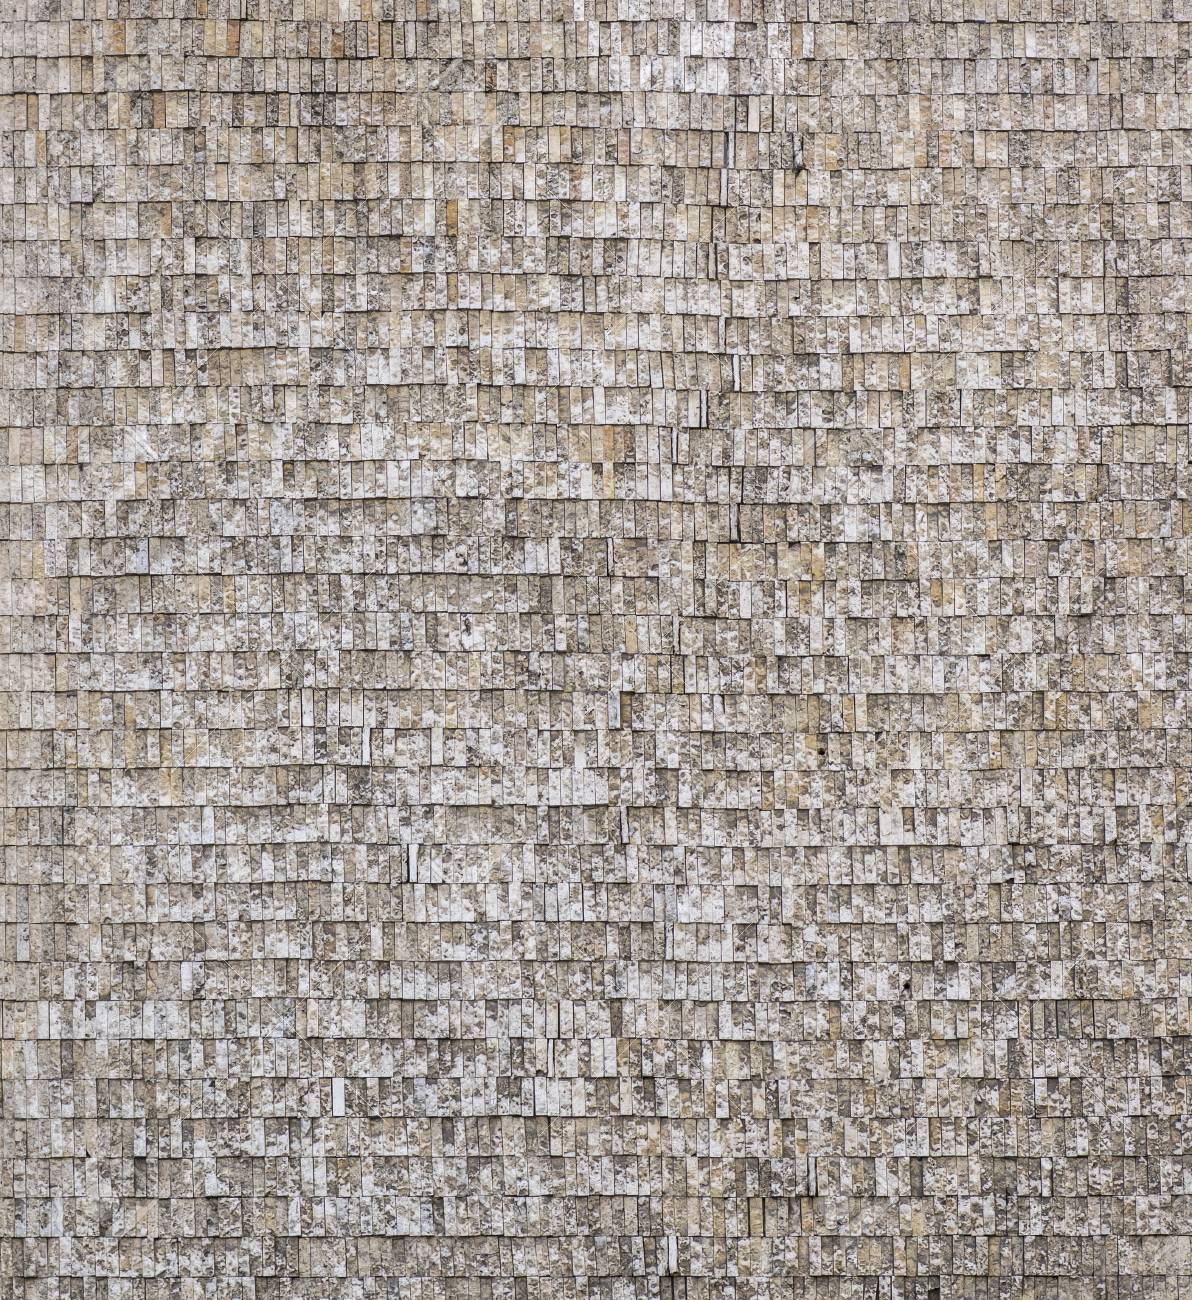 Small Tiles Wall Texture Stock Photo, Picture And Royalty Free Image ...